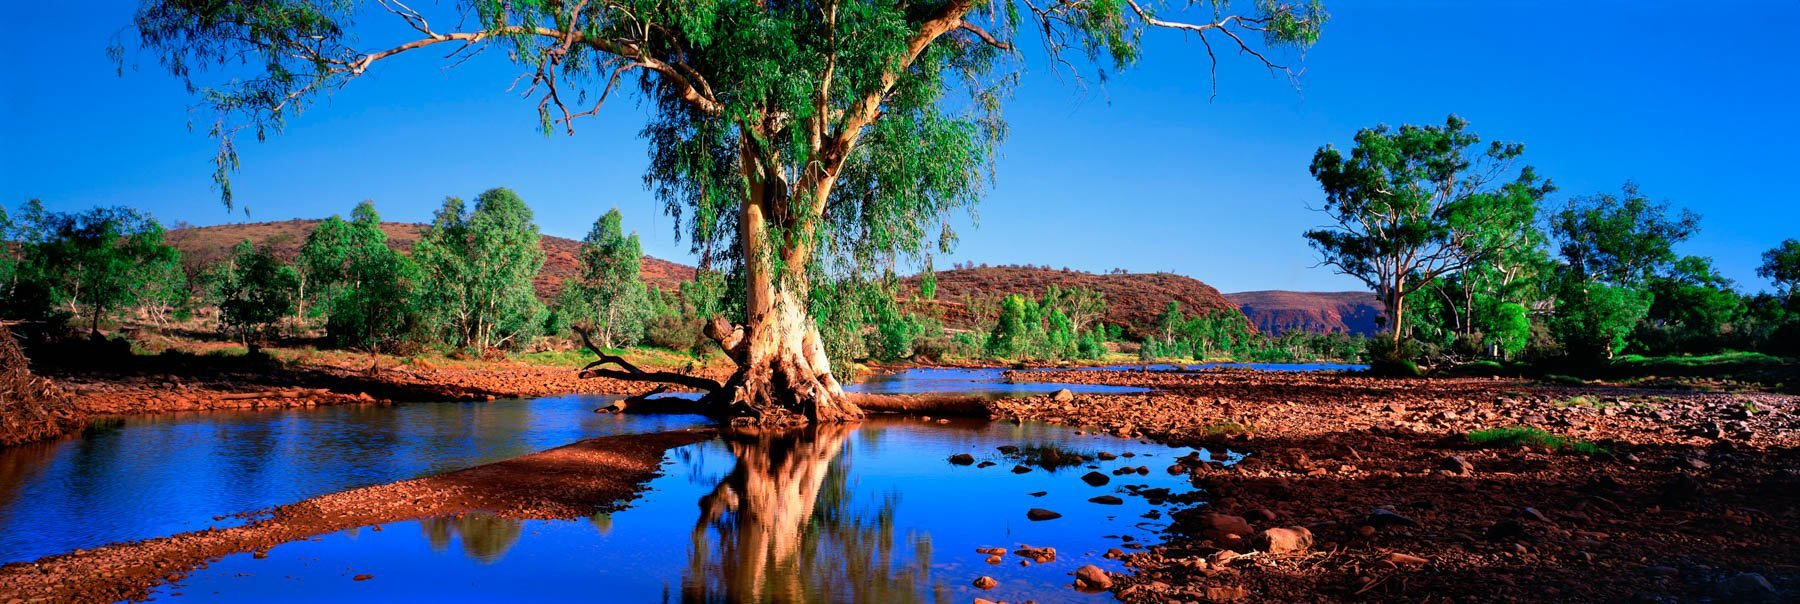 River gums at Finke River Crossing, NT, Australia.